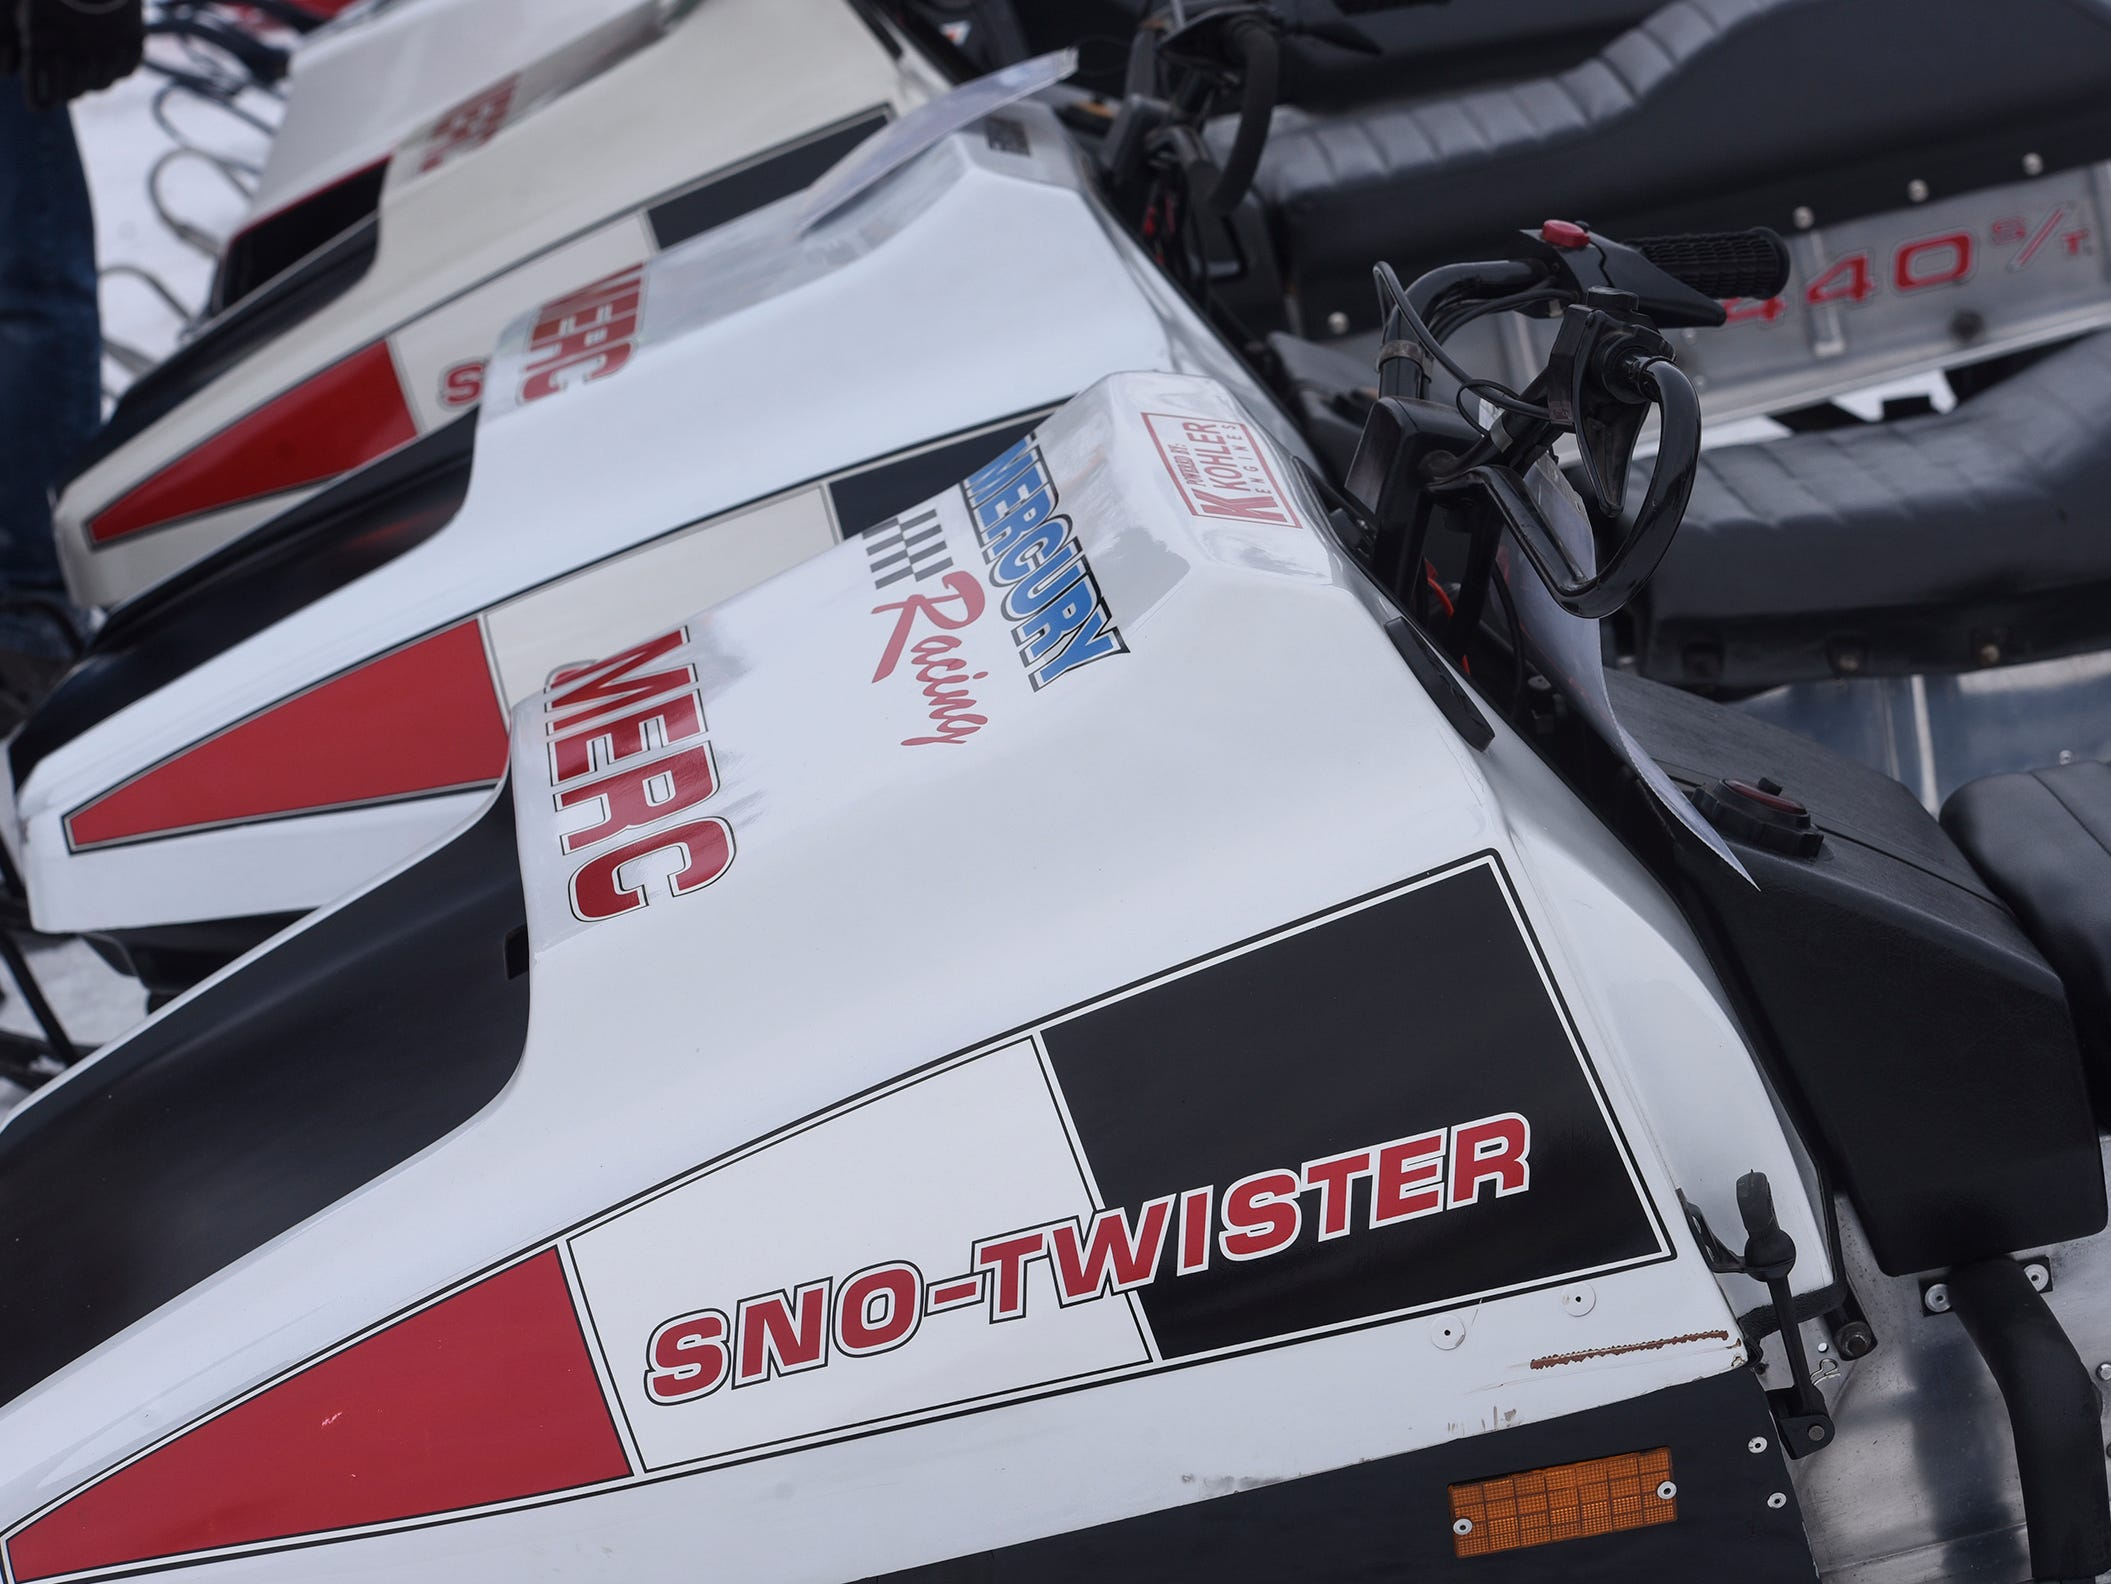 A collection of rare Mercury snowmobiles joins other vintage snowmobiles Saturday, Feb. 9, during the St. Stephen River Runners snowmobile club's 50th Anniversary Celebration in St. Stephen.